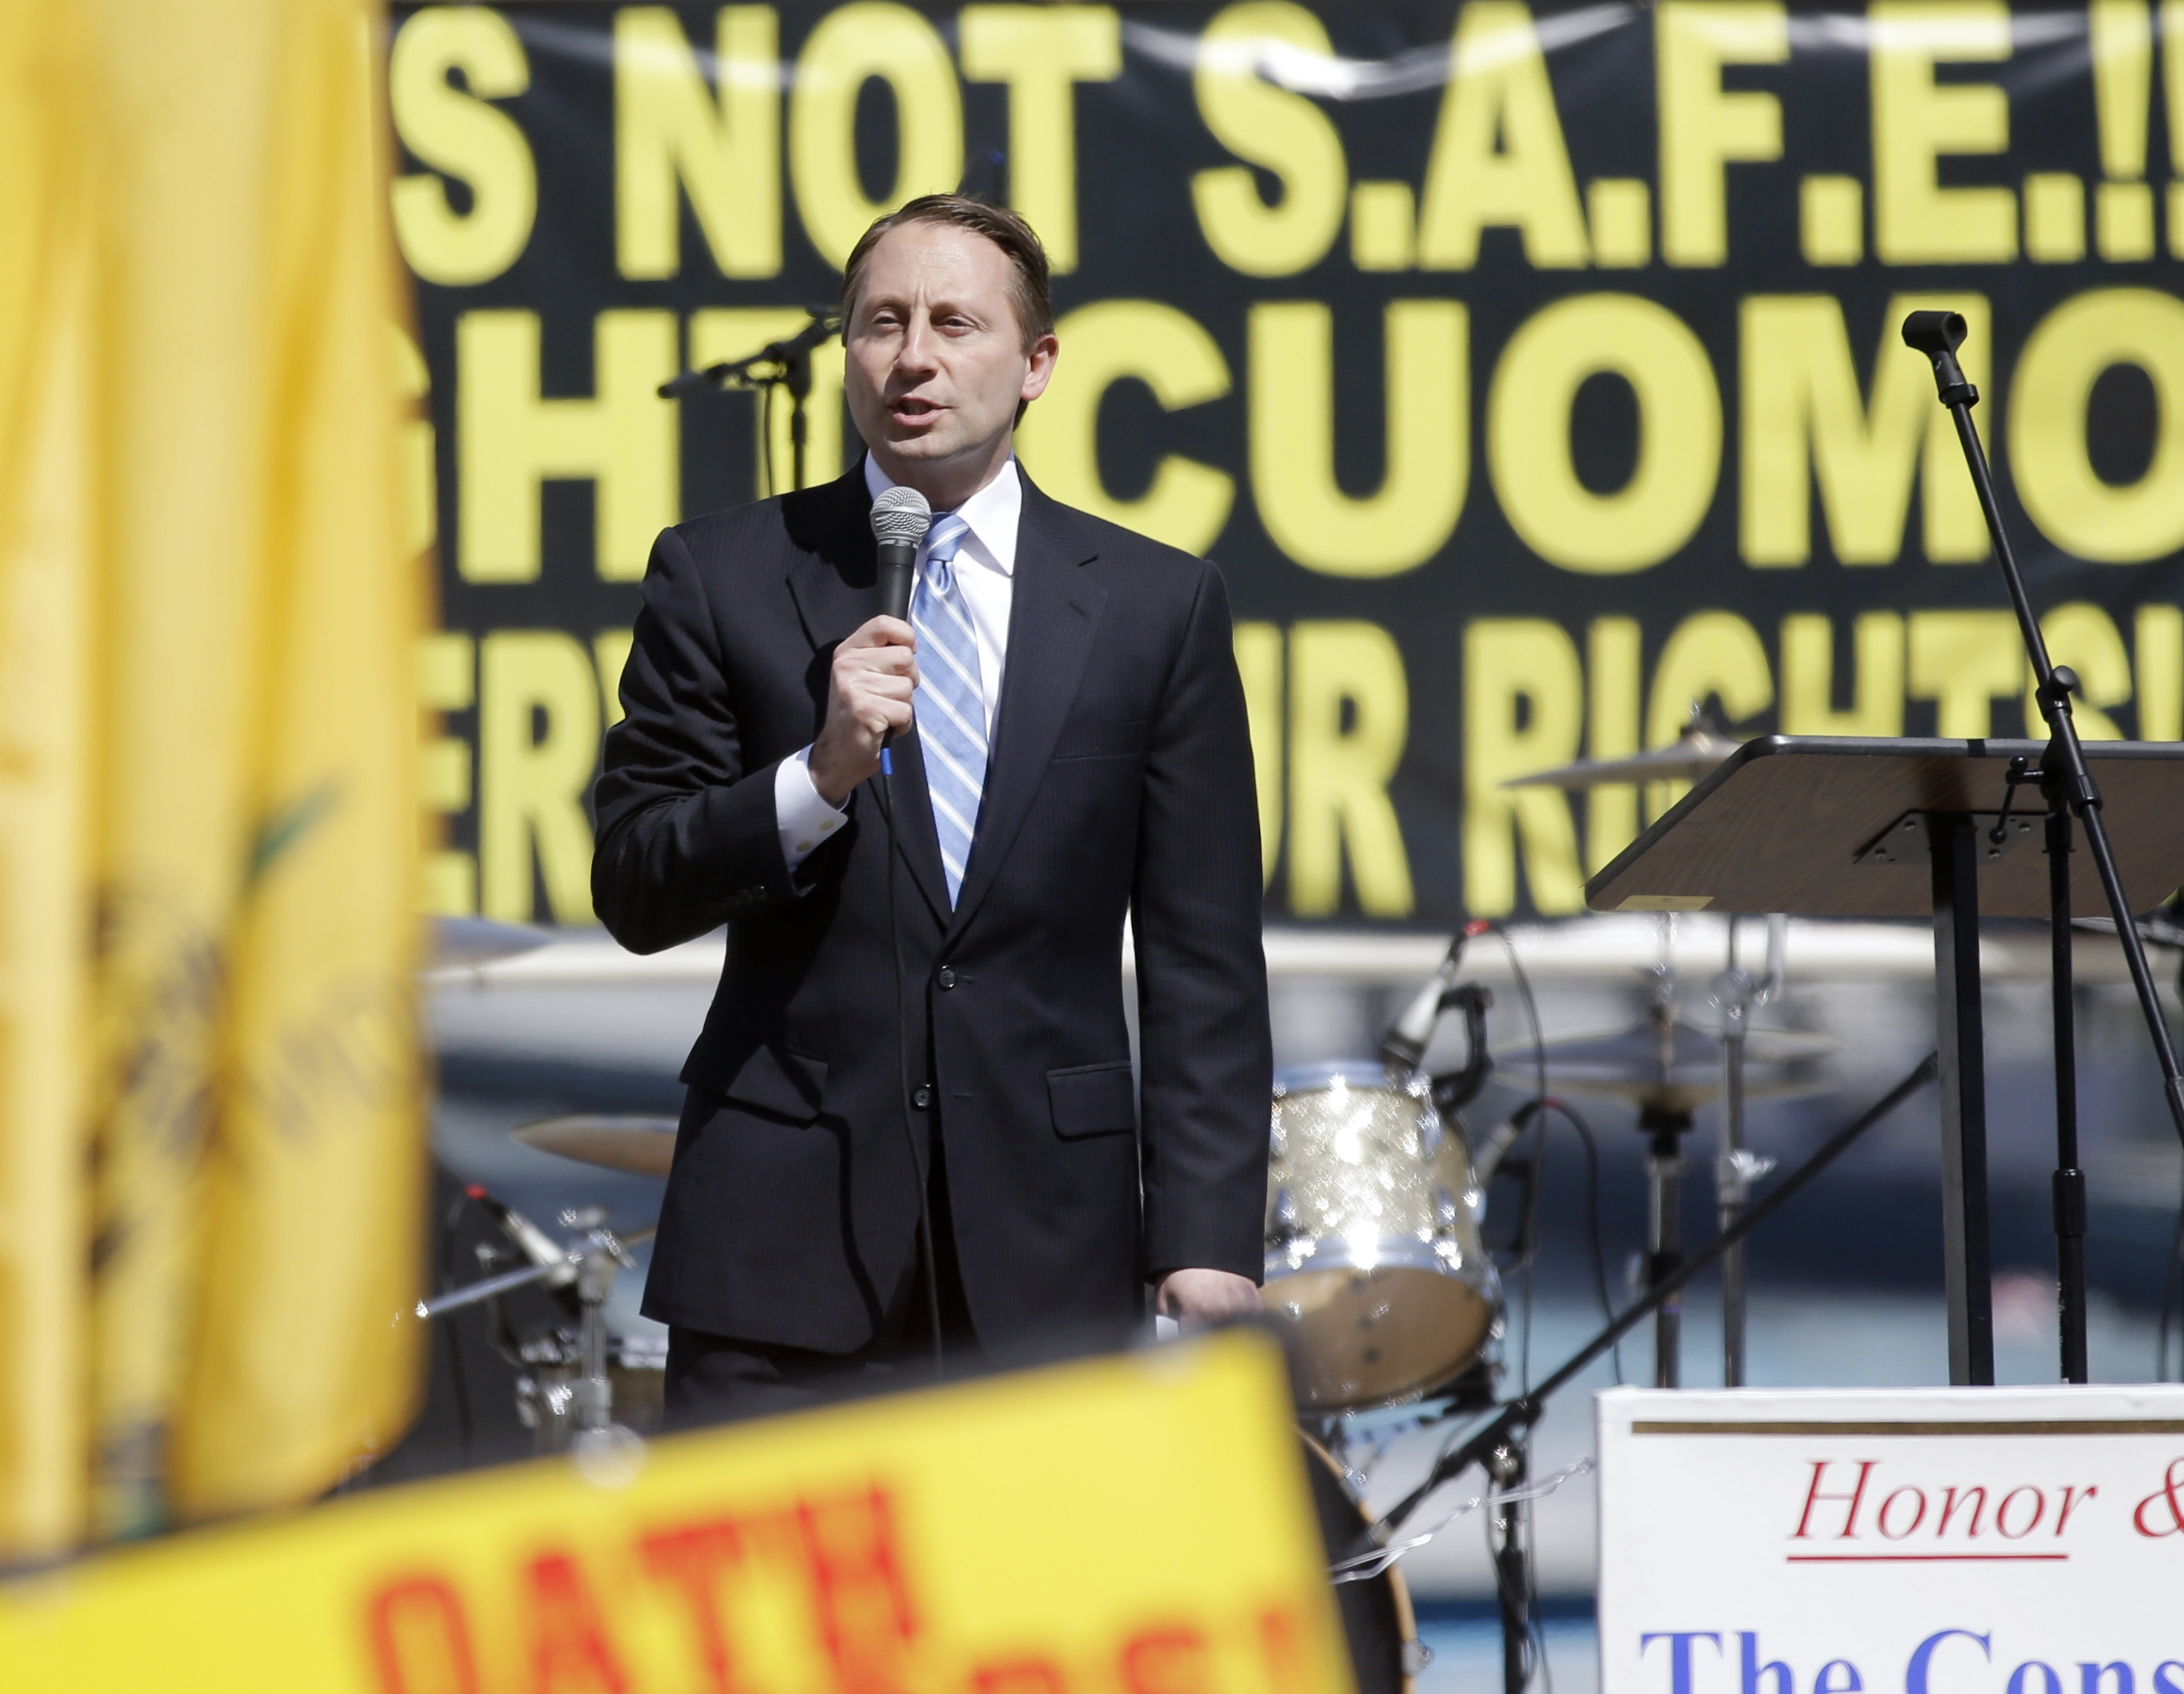 Republican gubernatorial candidate Rob Astorino speaks during a gun rights rally at the Empire State Plaza in Albany.